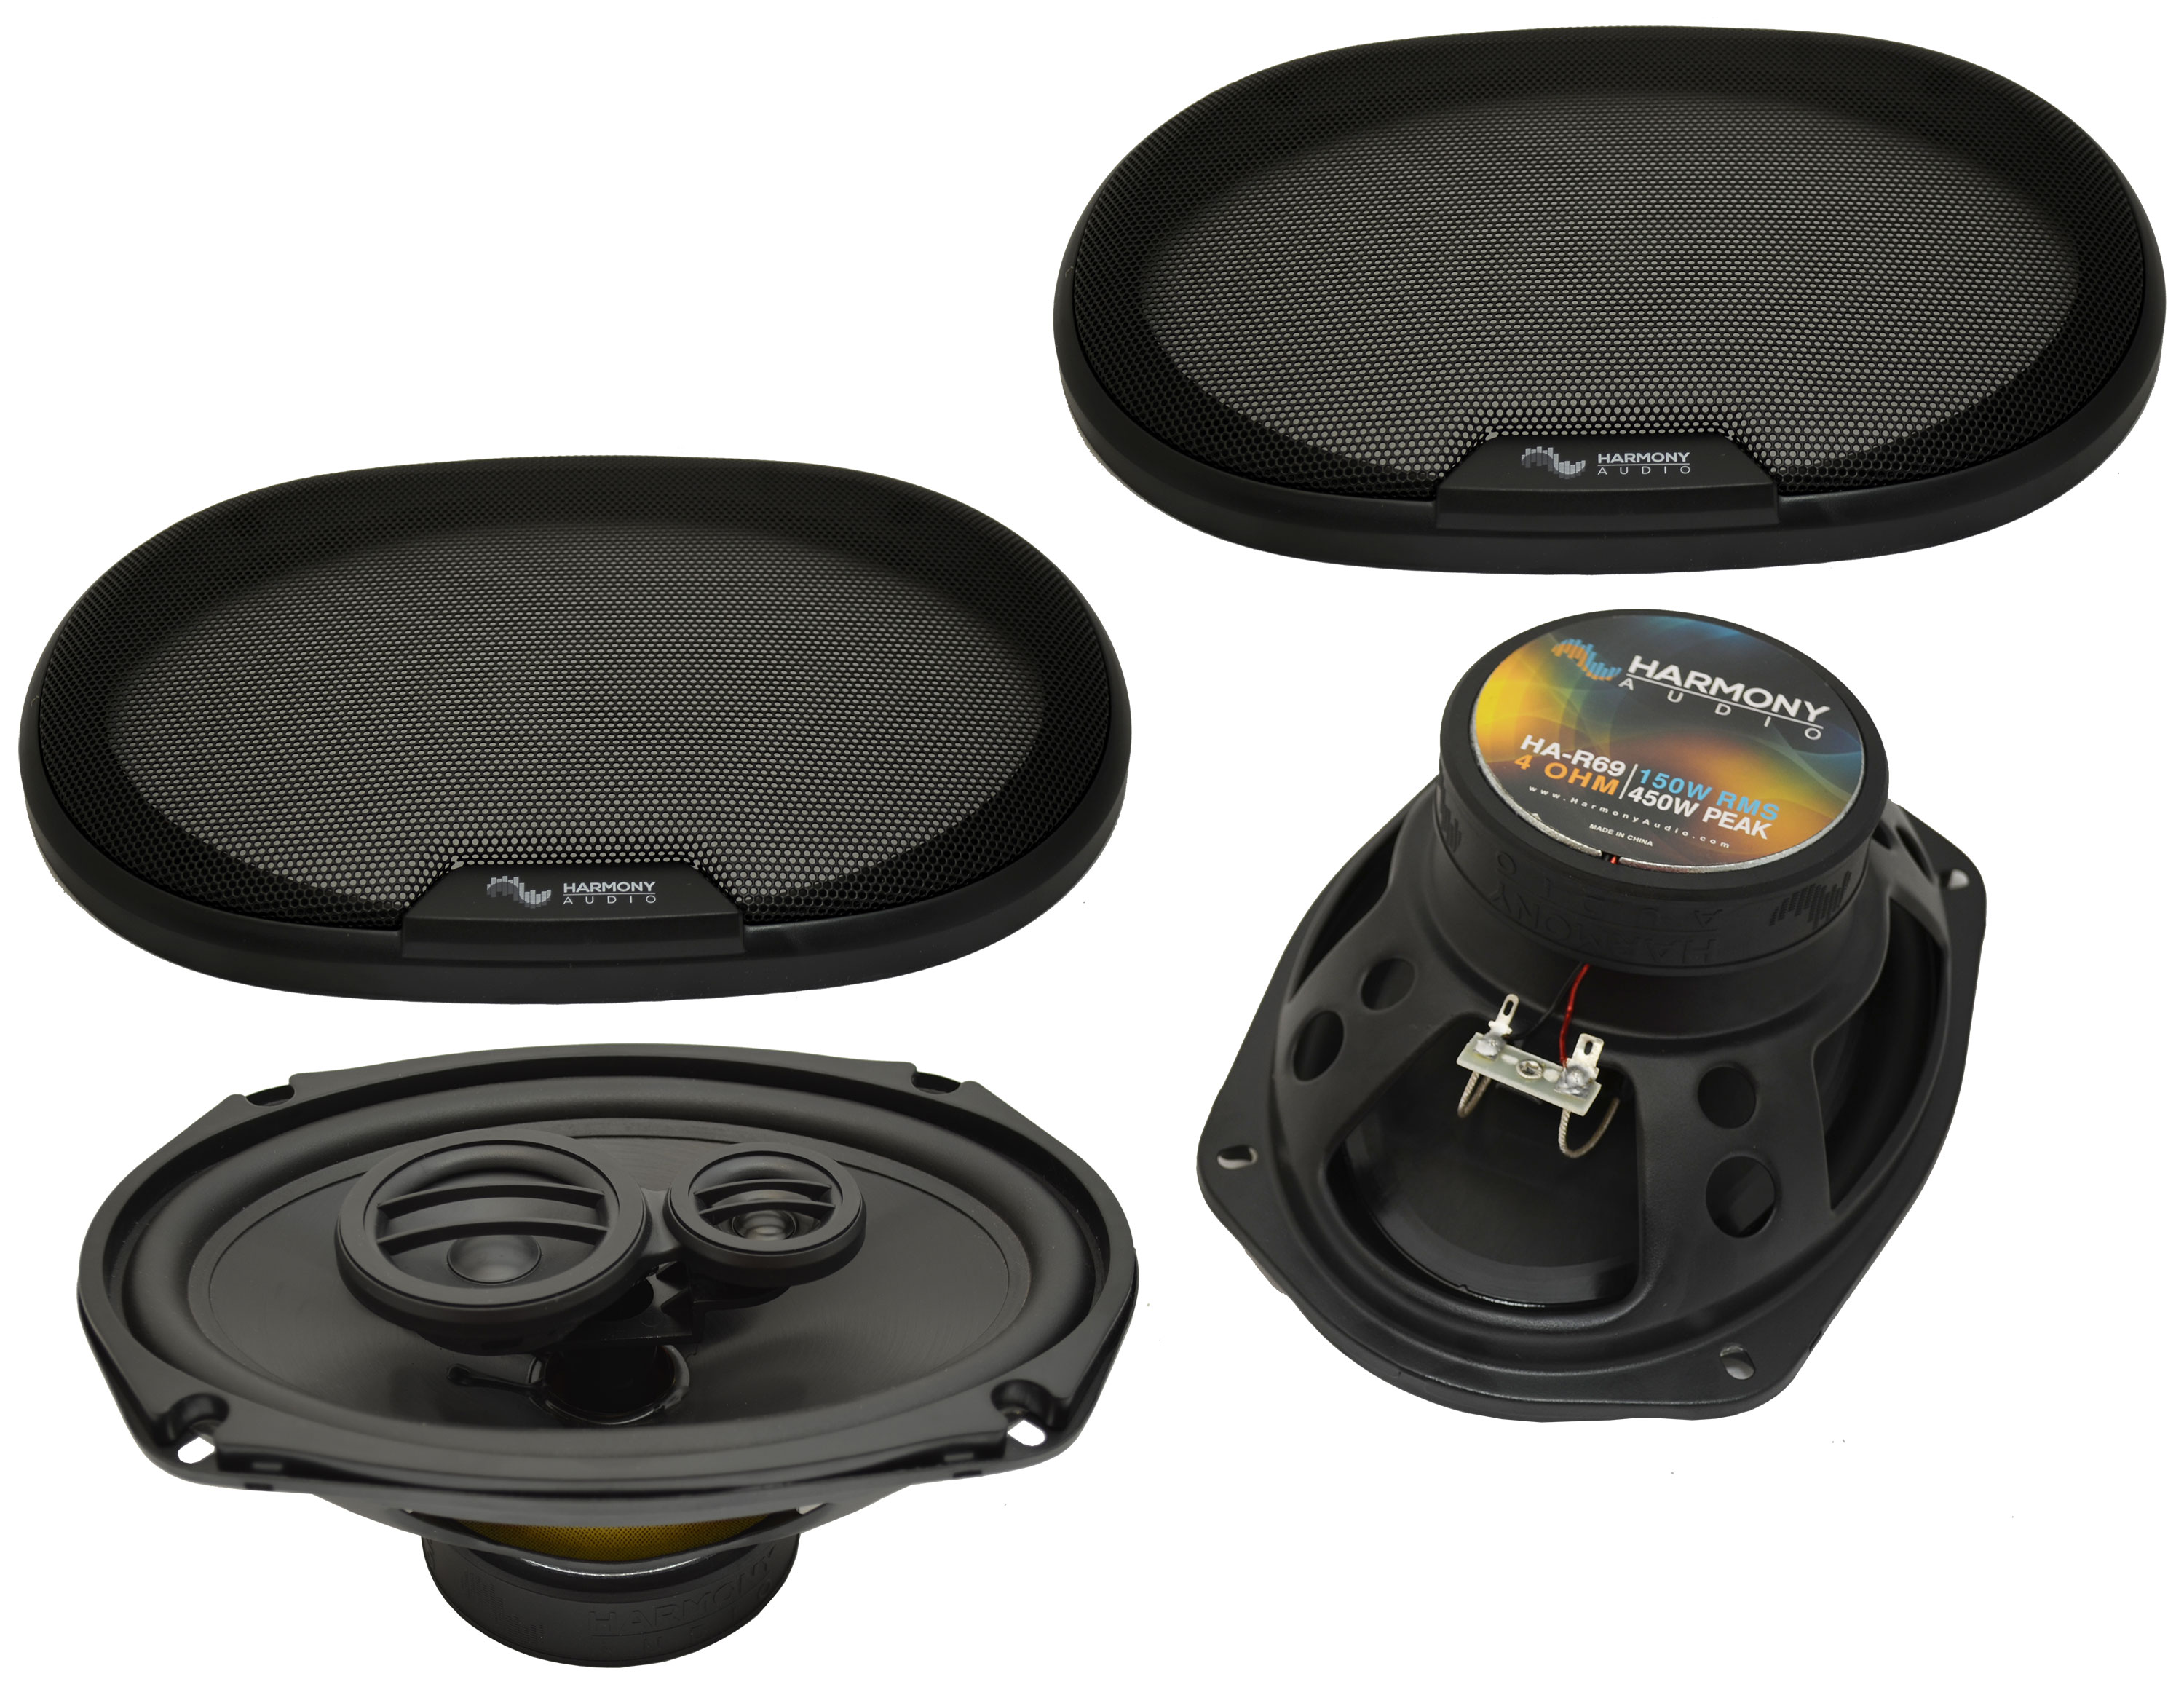 Fits Infiniti G25 2011-2012 Rear Deck Replacement Harmony HA-R69 Speakers New